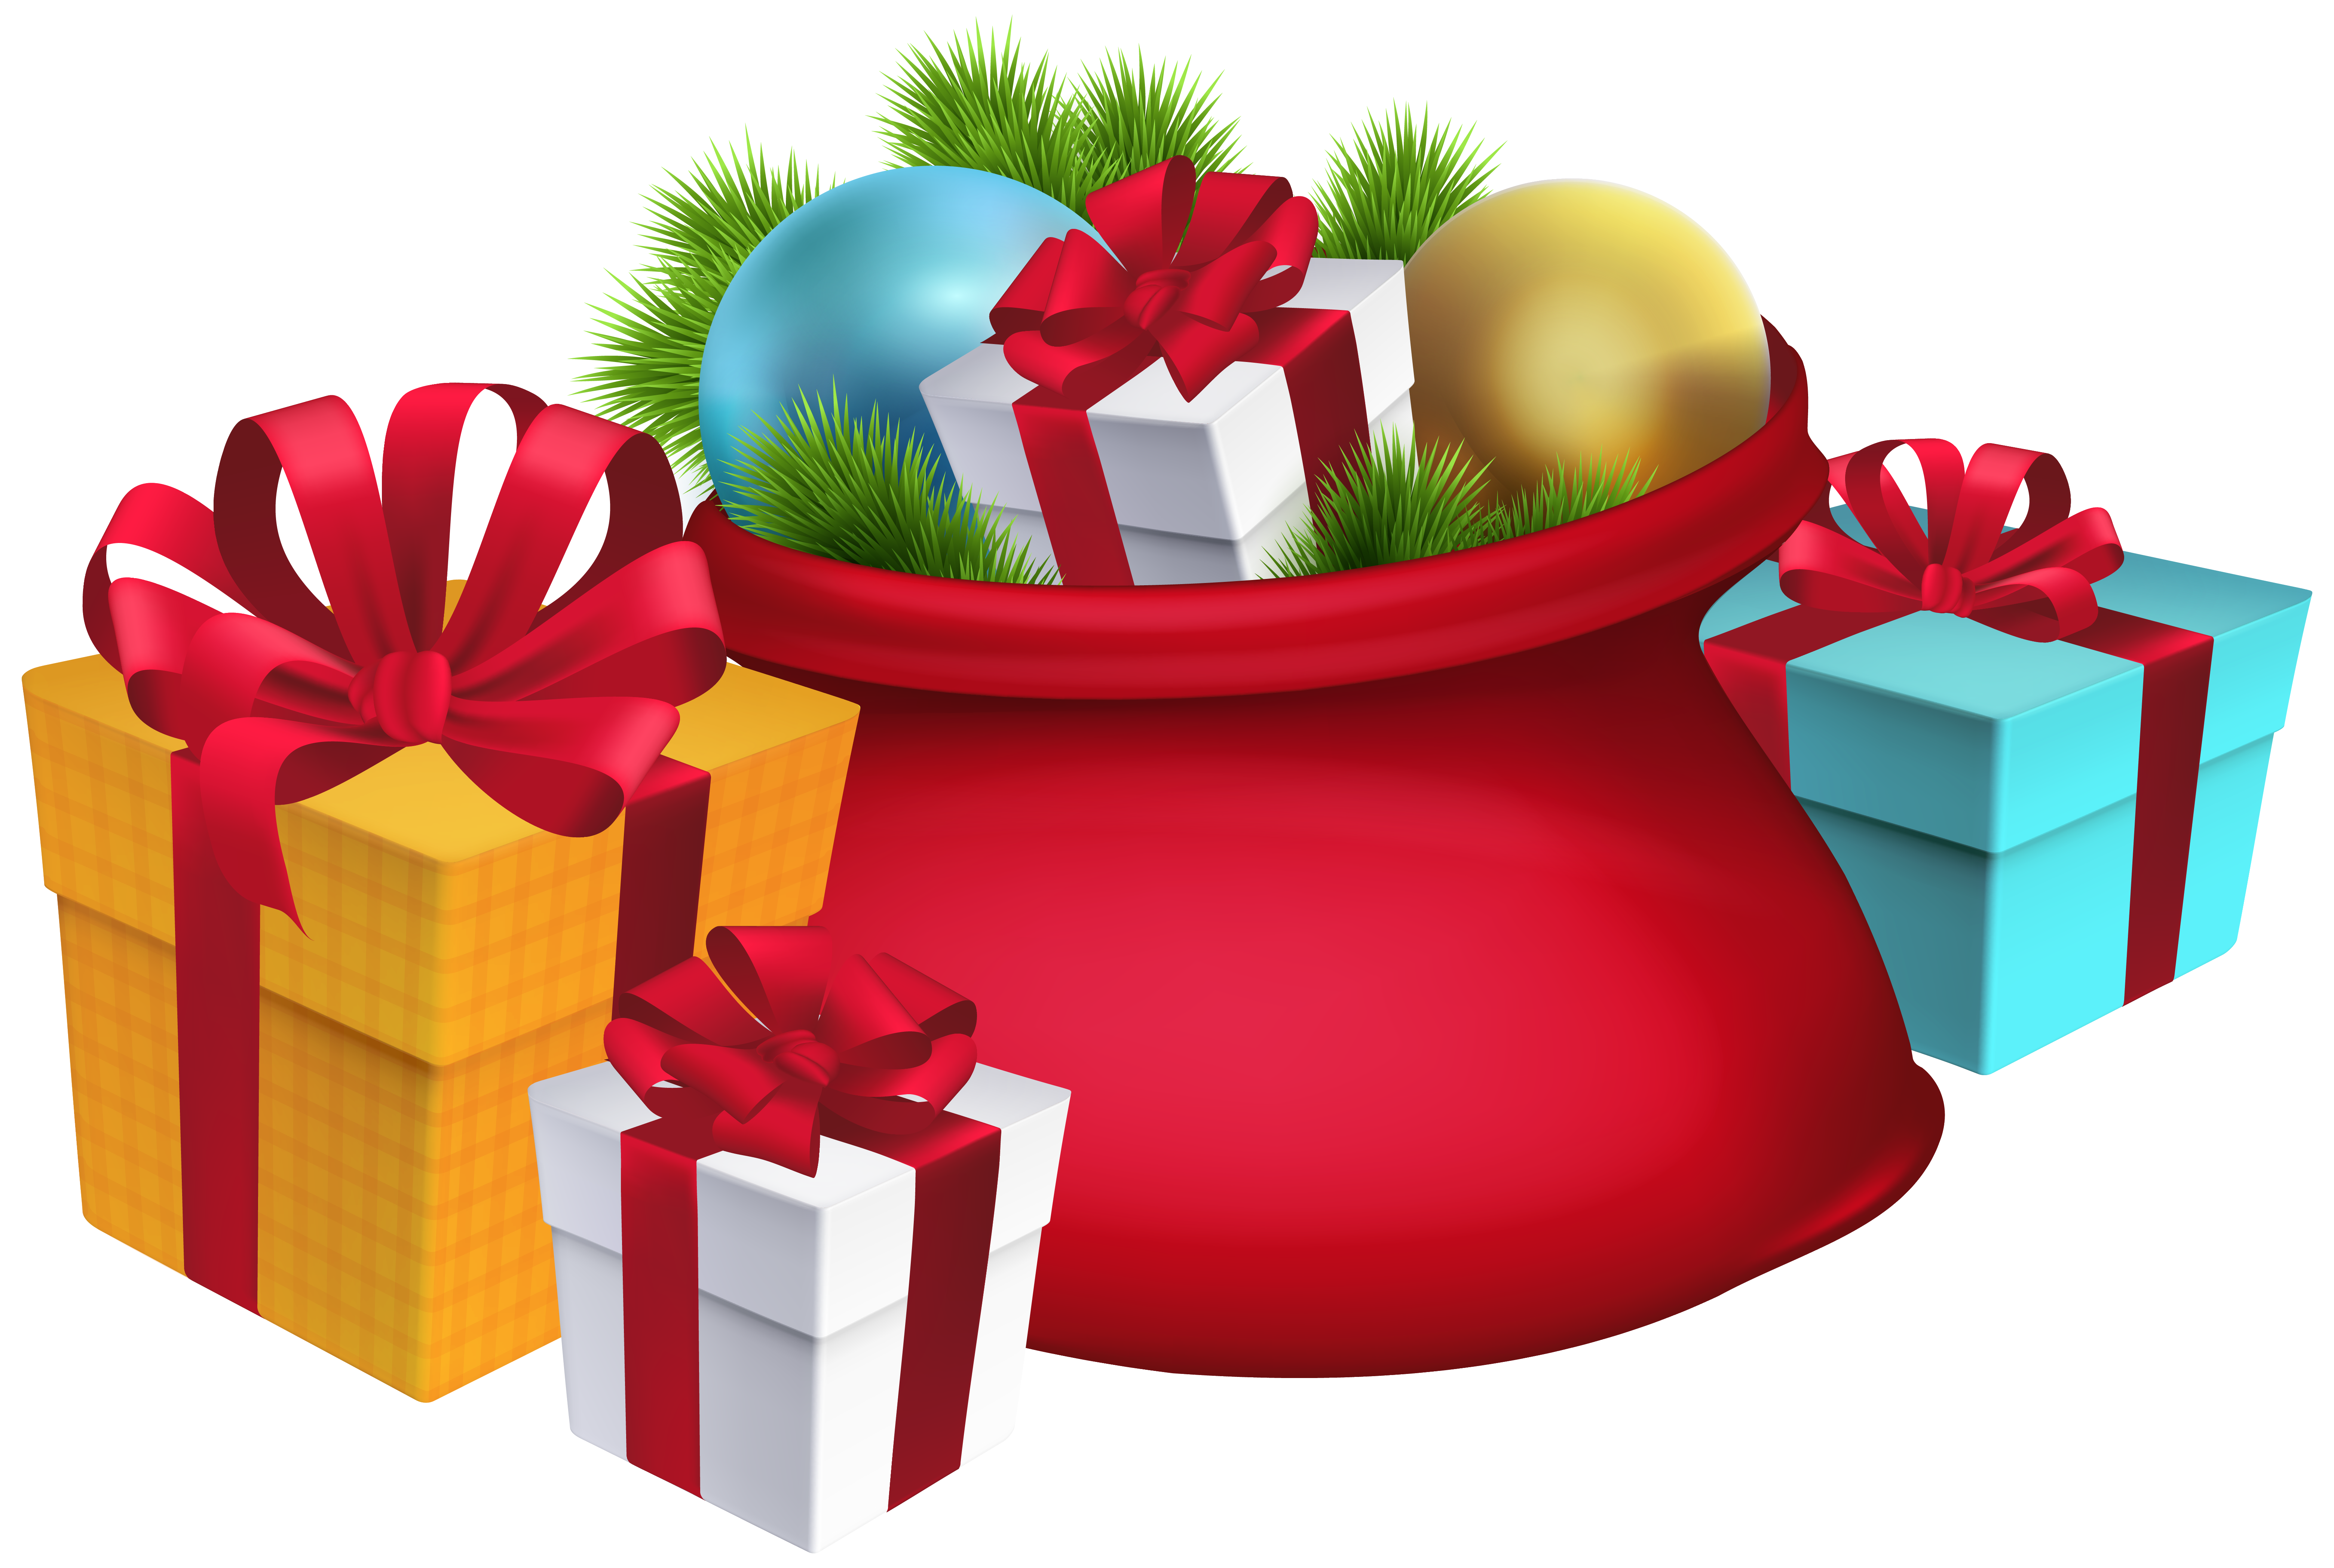 Christmas sack clipart jpg library download Christmas Santa\'s Sack Decorations PNG Clipart Image | Gallery ... jpg library download